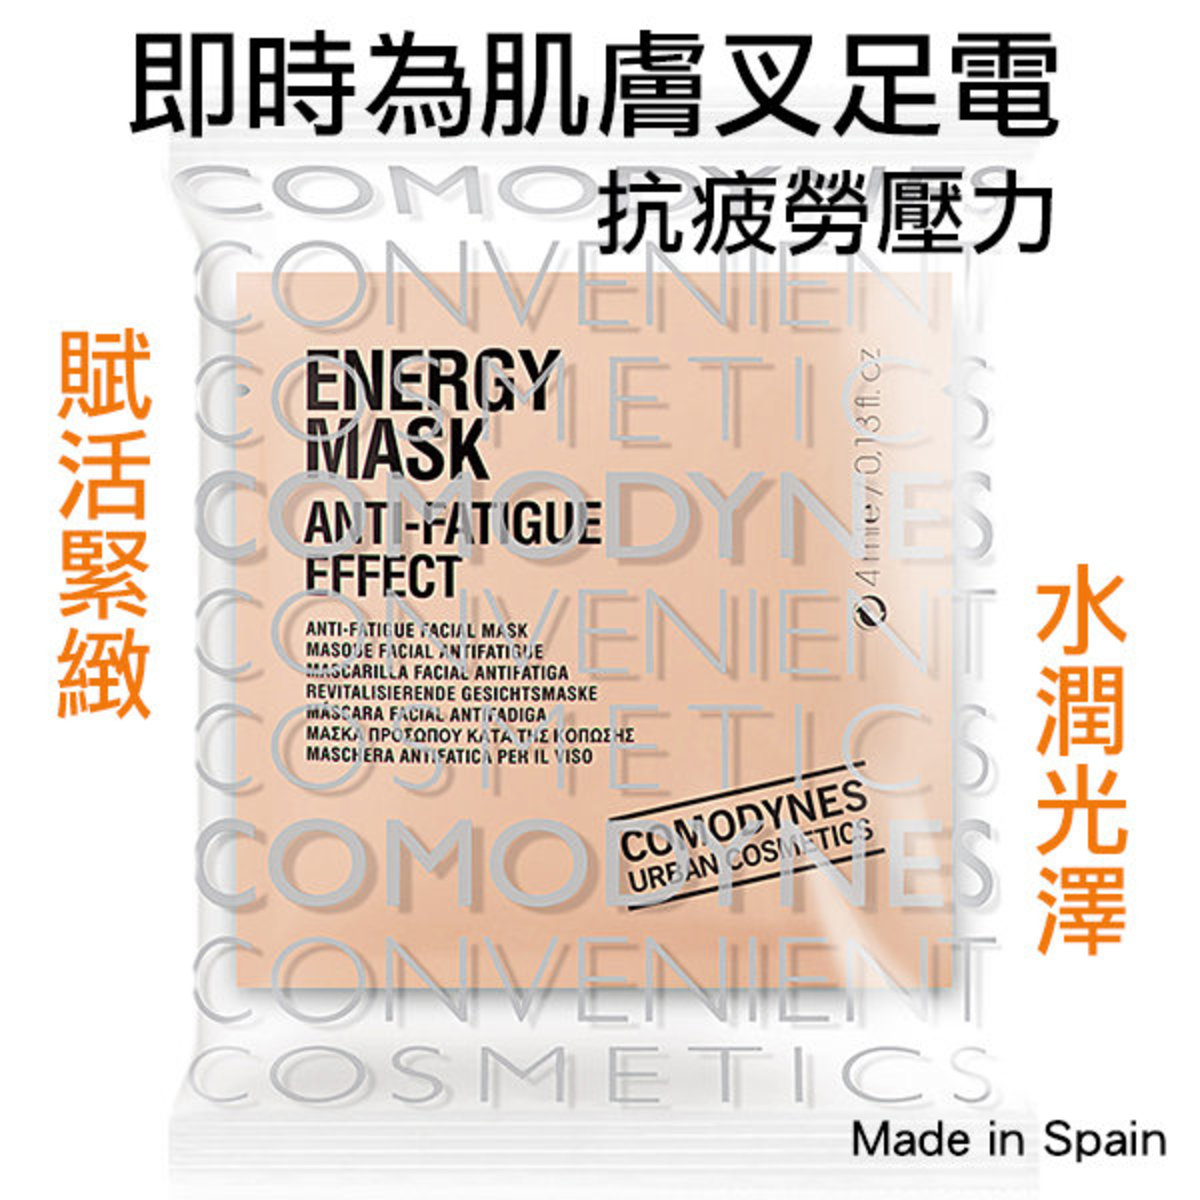 Energy Mask (Anti Fatigue Effect) 4ml x 5 pieces - (Authorised Goods)